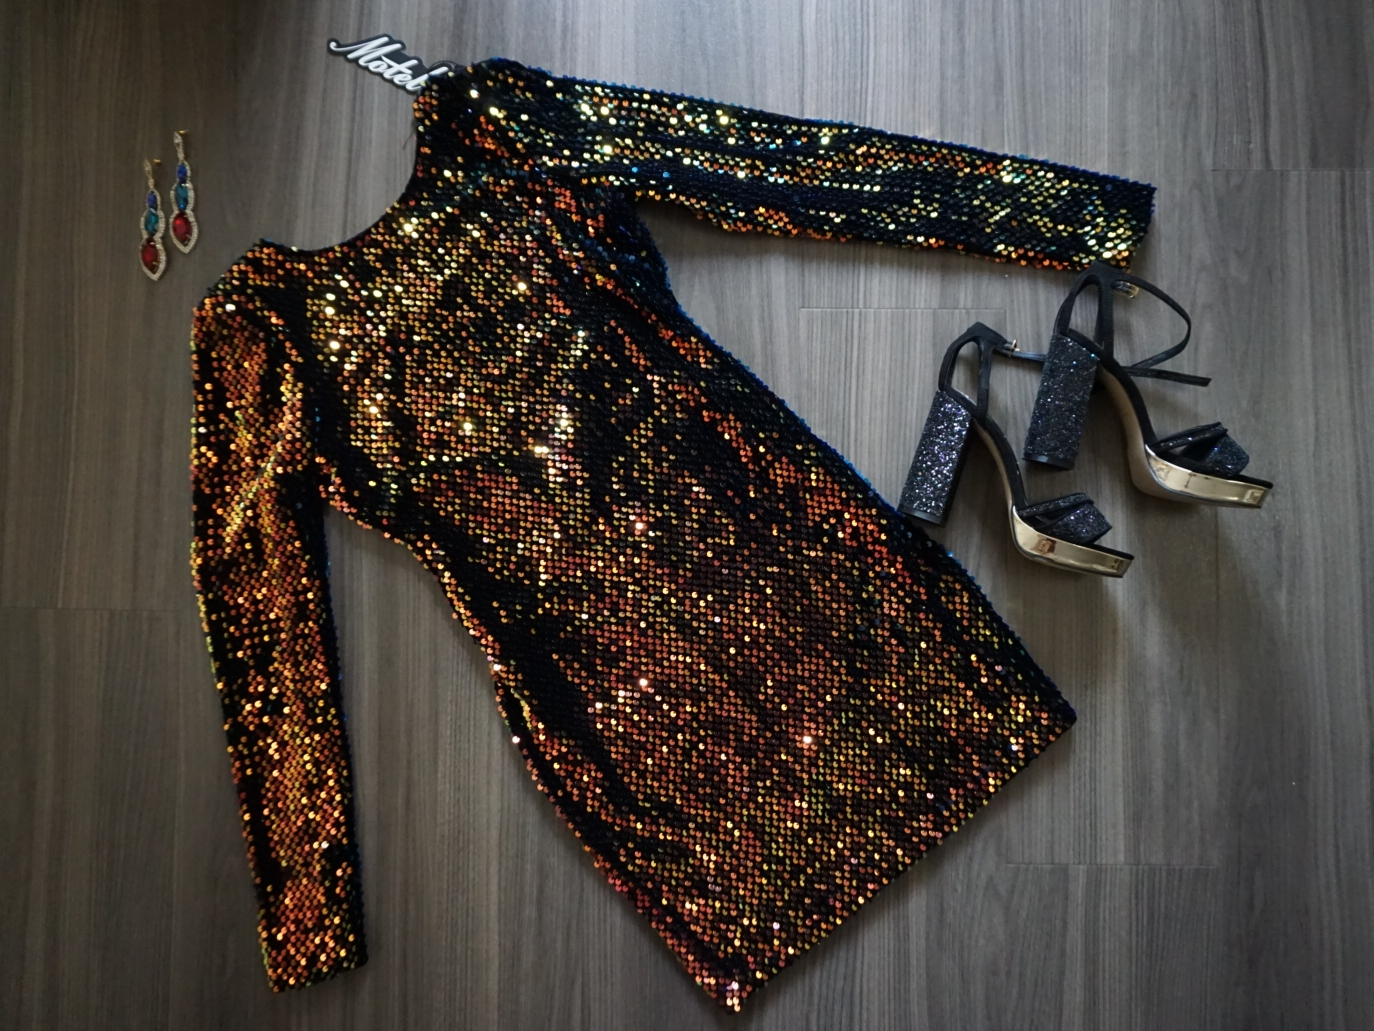 MOTEL ROCKS A STYLE GUIDE ON HOW TO SHINE BRIGHT LIKE A DIAMOND DURING THE PARTY SEASON